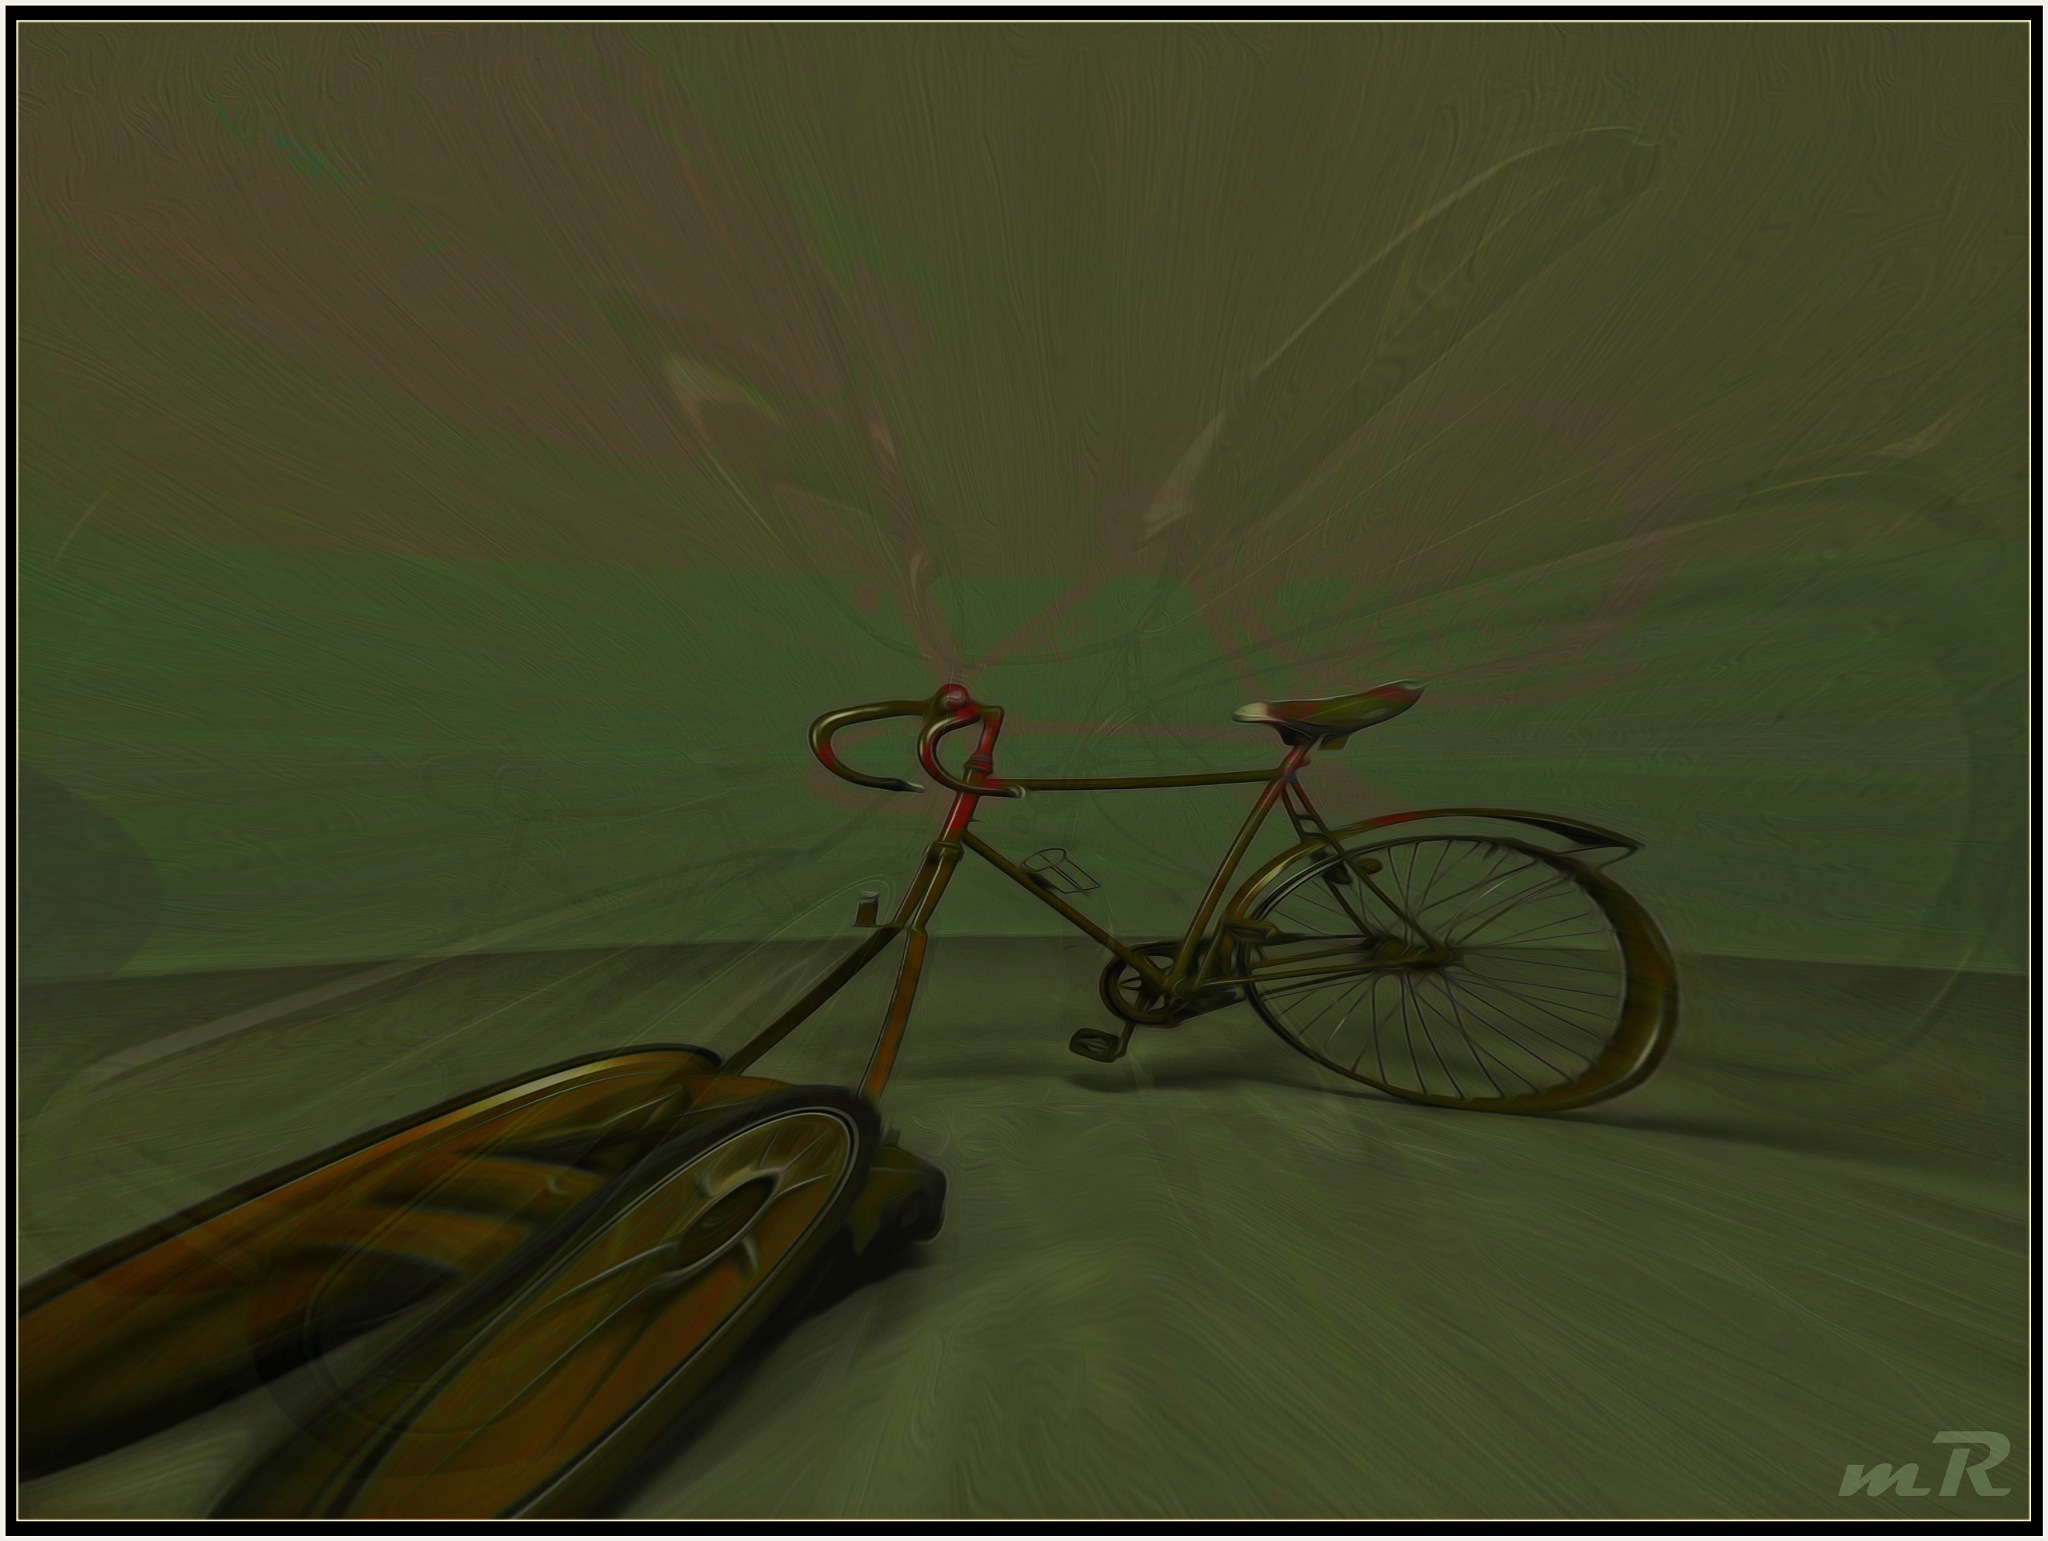 Fkd up Bicycle Dali Style by Mikael Rennerhorn